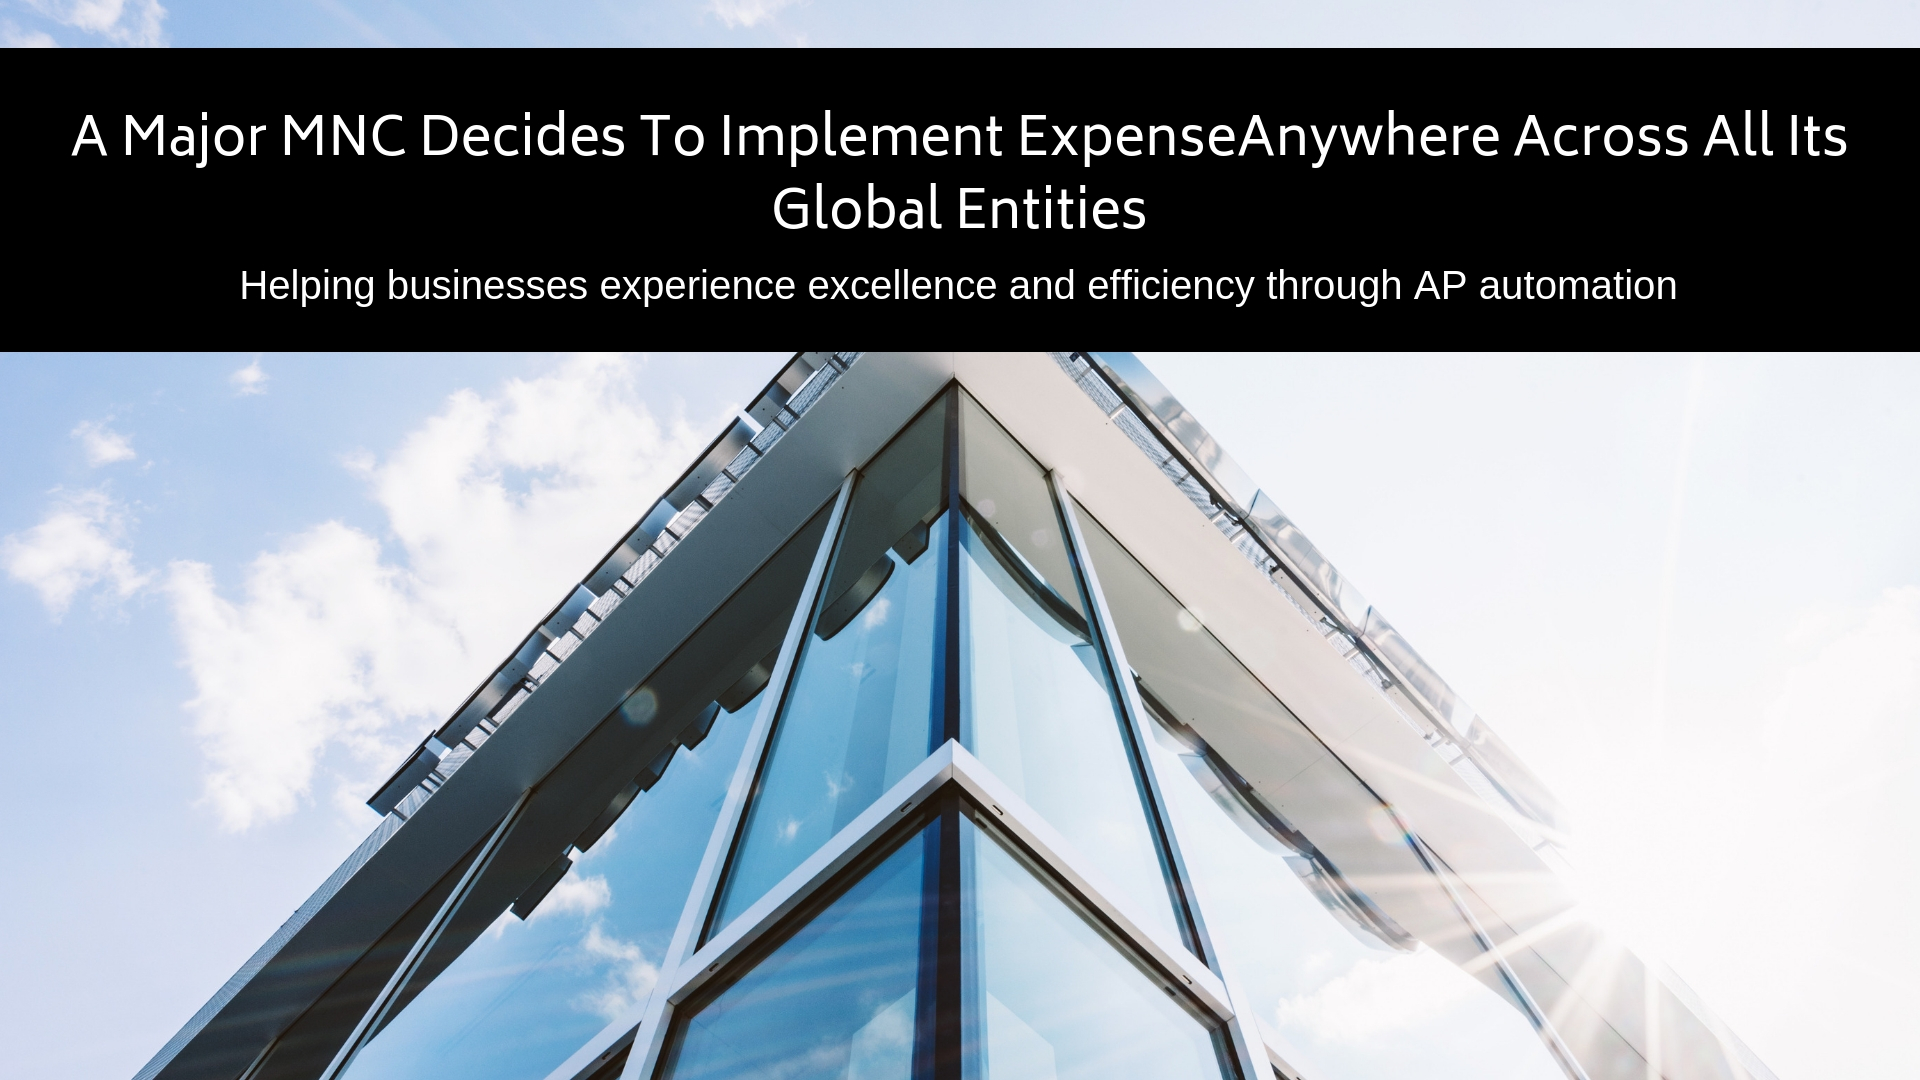 A Major MNC Decides To Implement ExpenseAnywhere Across All Its Global EntitiesHelping businesses experience excellence and efficiency through AP automation